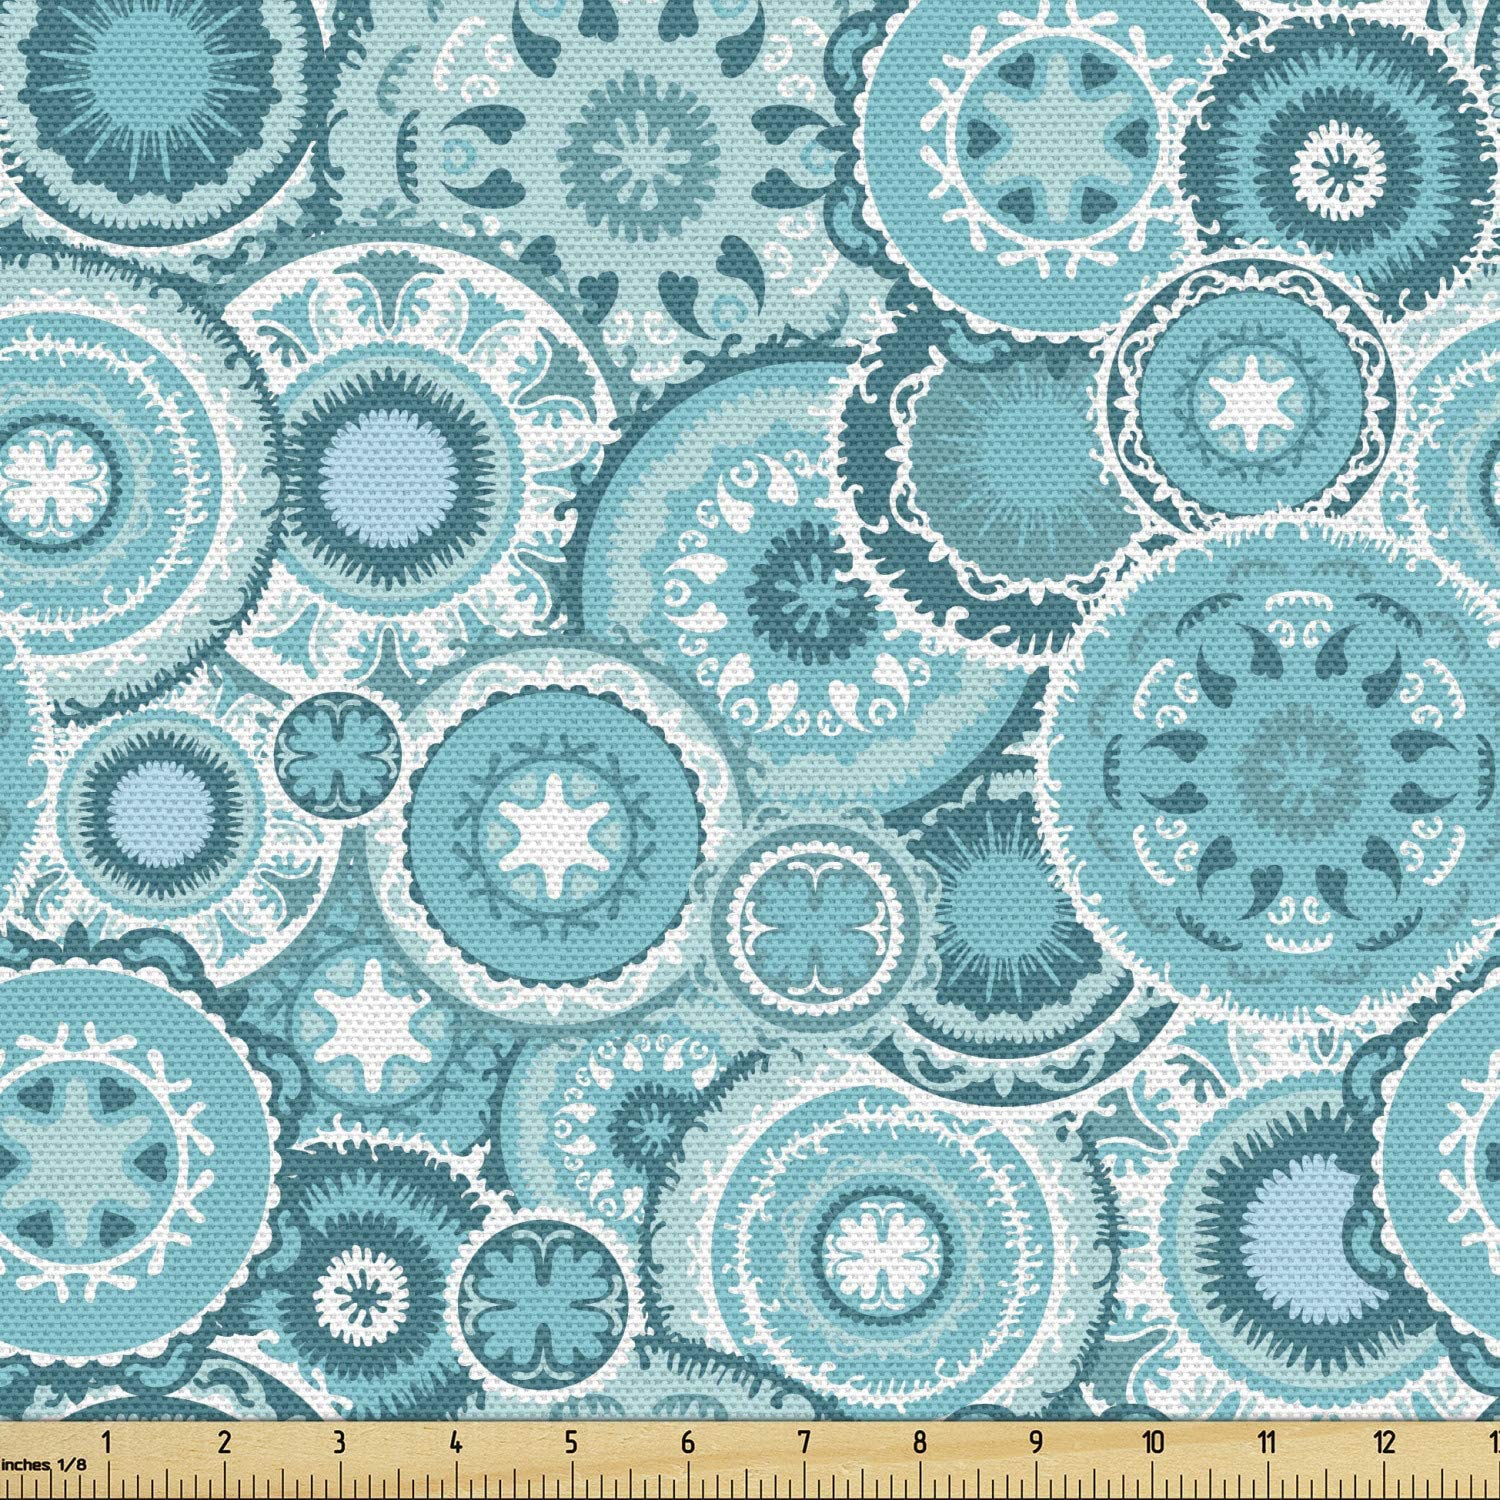 Ambesonne Aqua Fabric by The Yard, Hippie Floral Leaves Mandala Rounds Traditional Elements Print, Decorative Fabric for Upholstery and Home Accents, 1 Yard, Turquoise White